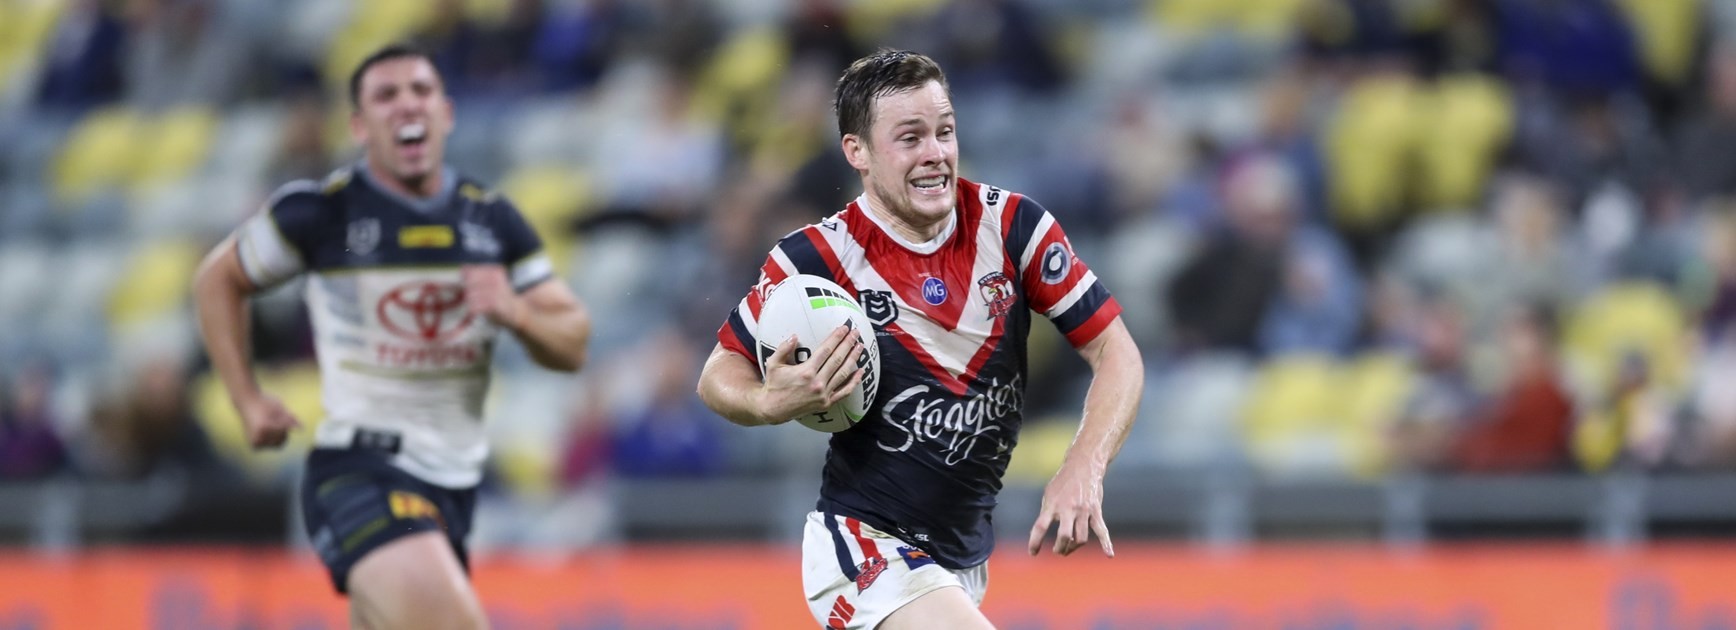 Luke Keary streaks away to score against North Queensland.